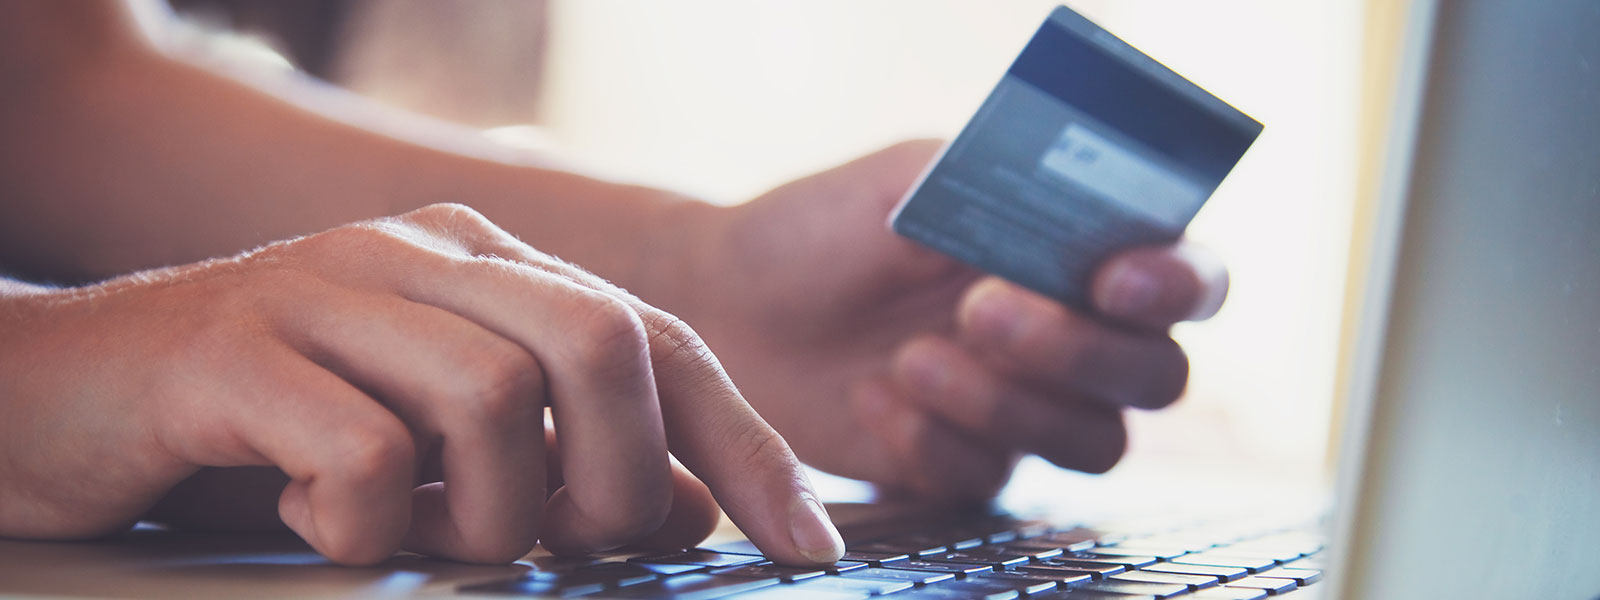 credit card purchasing on computer